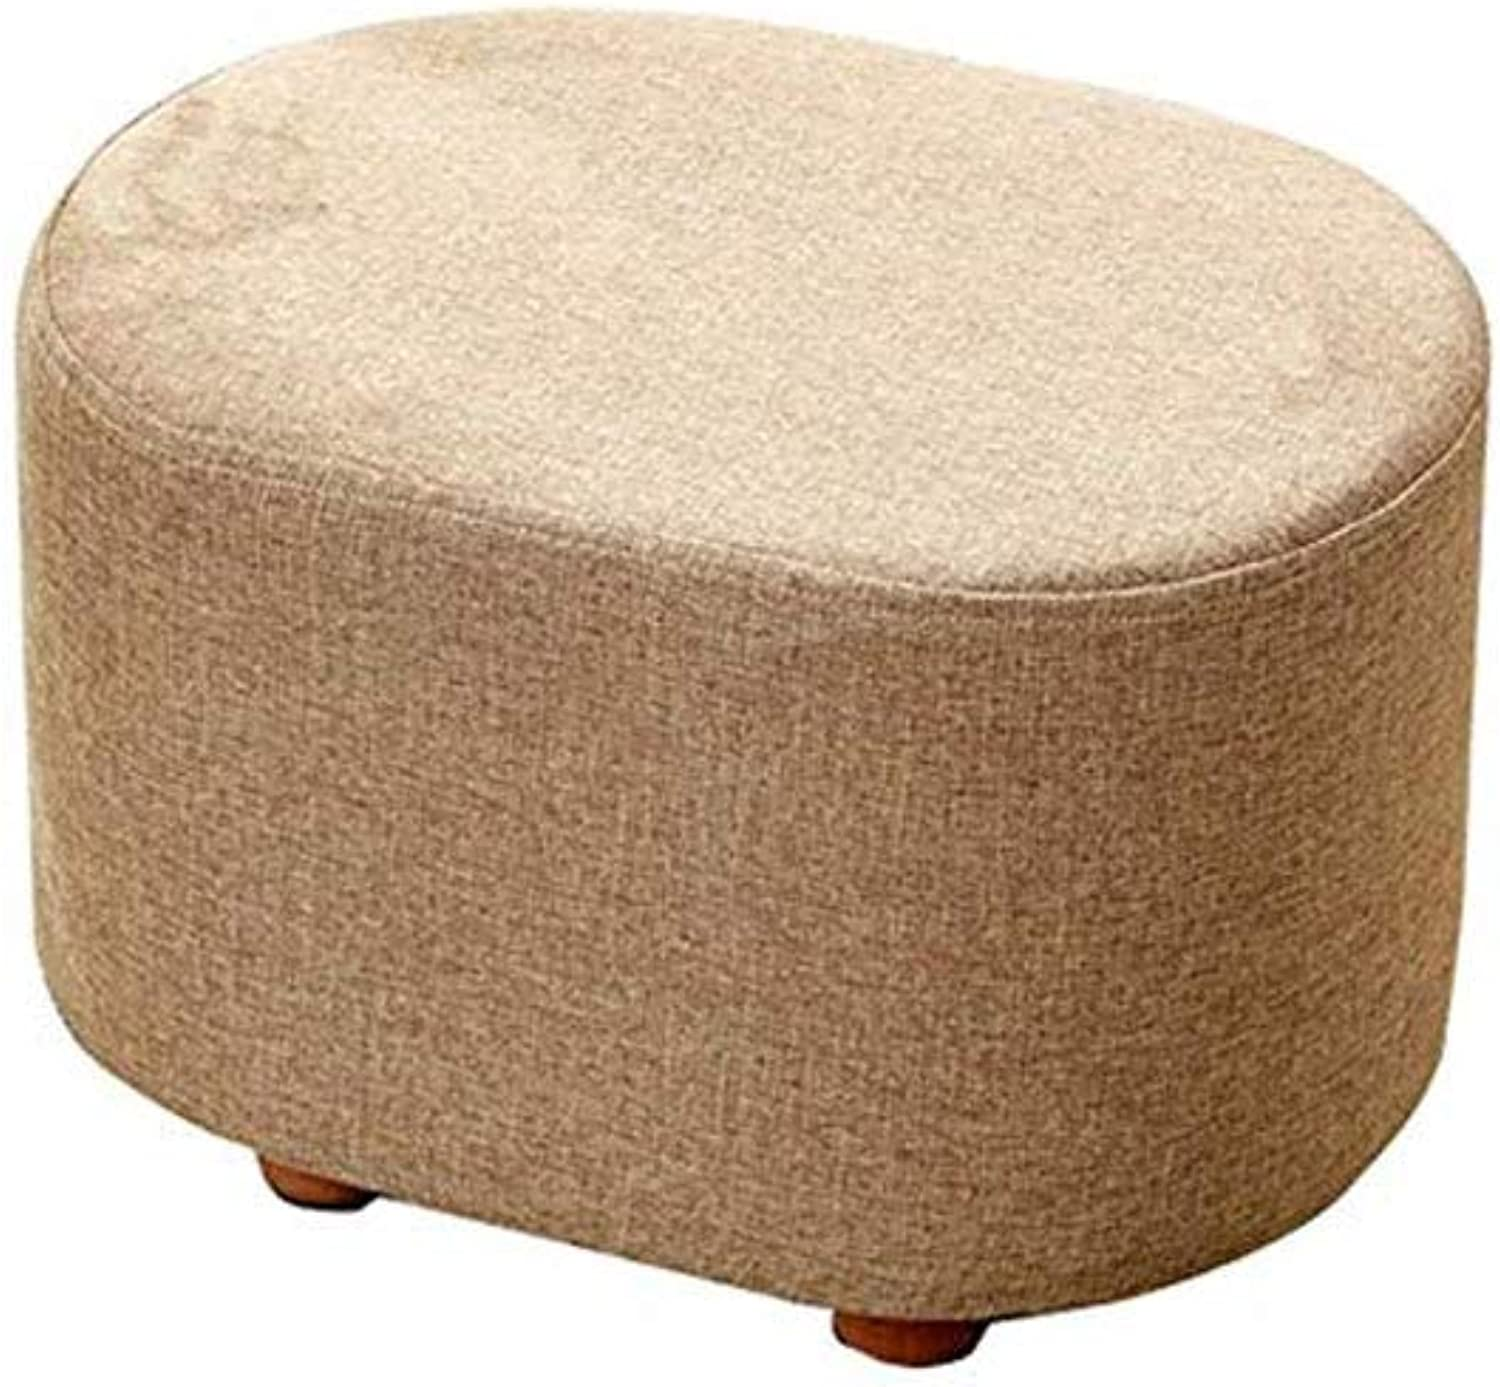 Footstool, Home Padded Wooden Stool, Padded Footstool Round Chair Dustproof Makeup Pad Washable Linen Chair (color   Khaki)